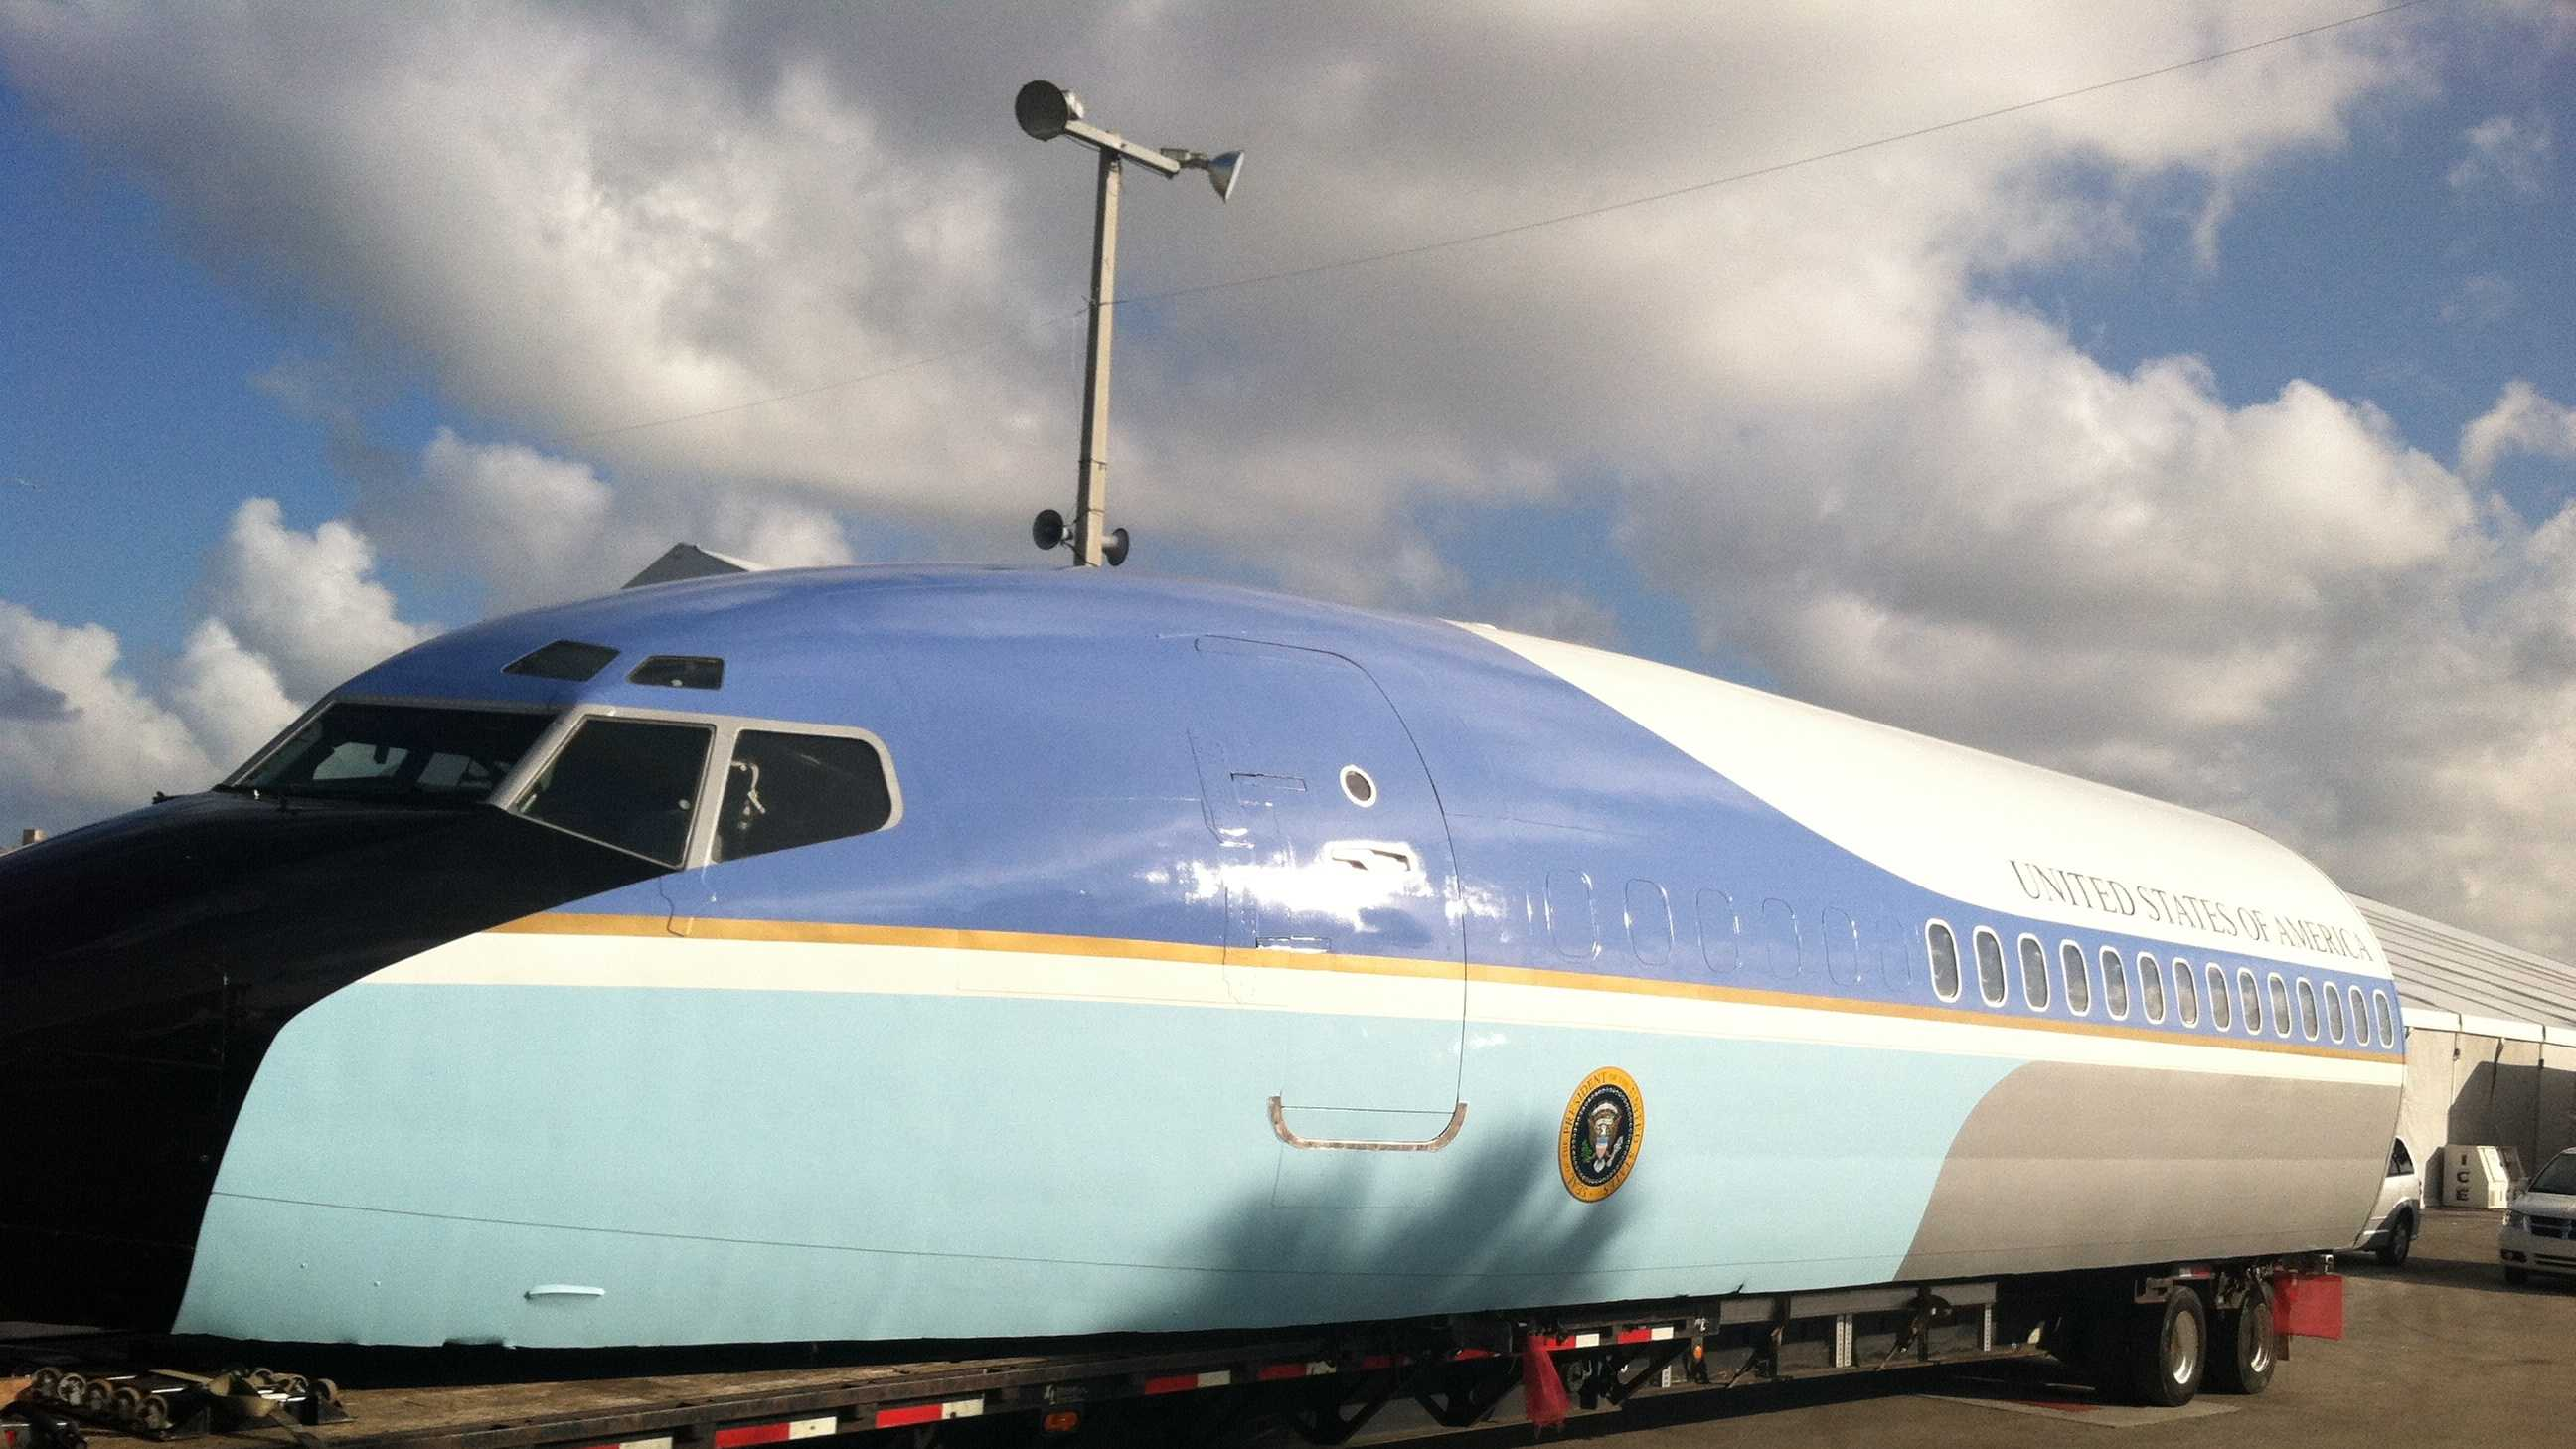 This Air Force One replica will be on display at the South Florida Fair.